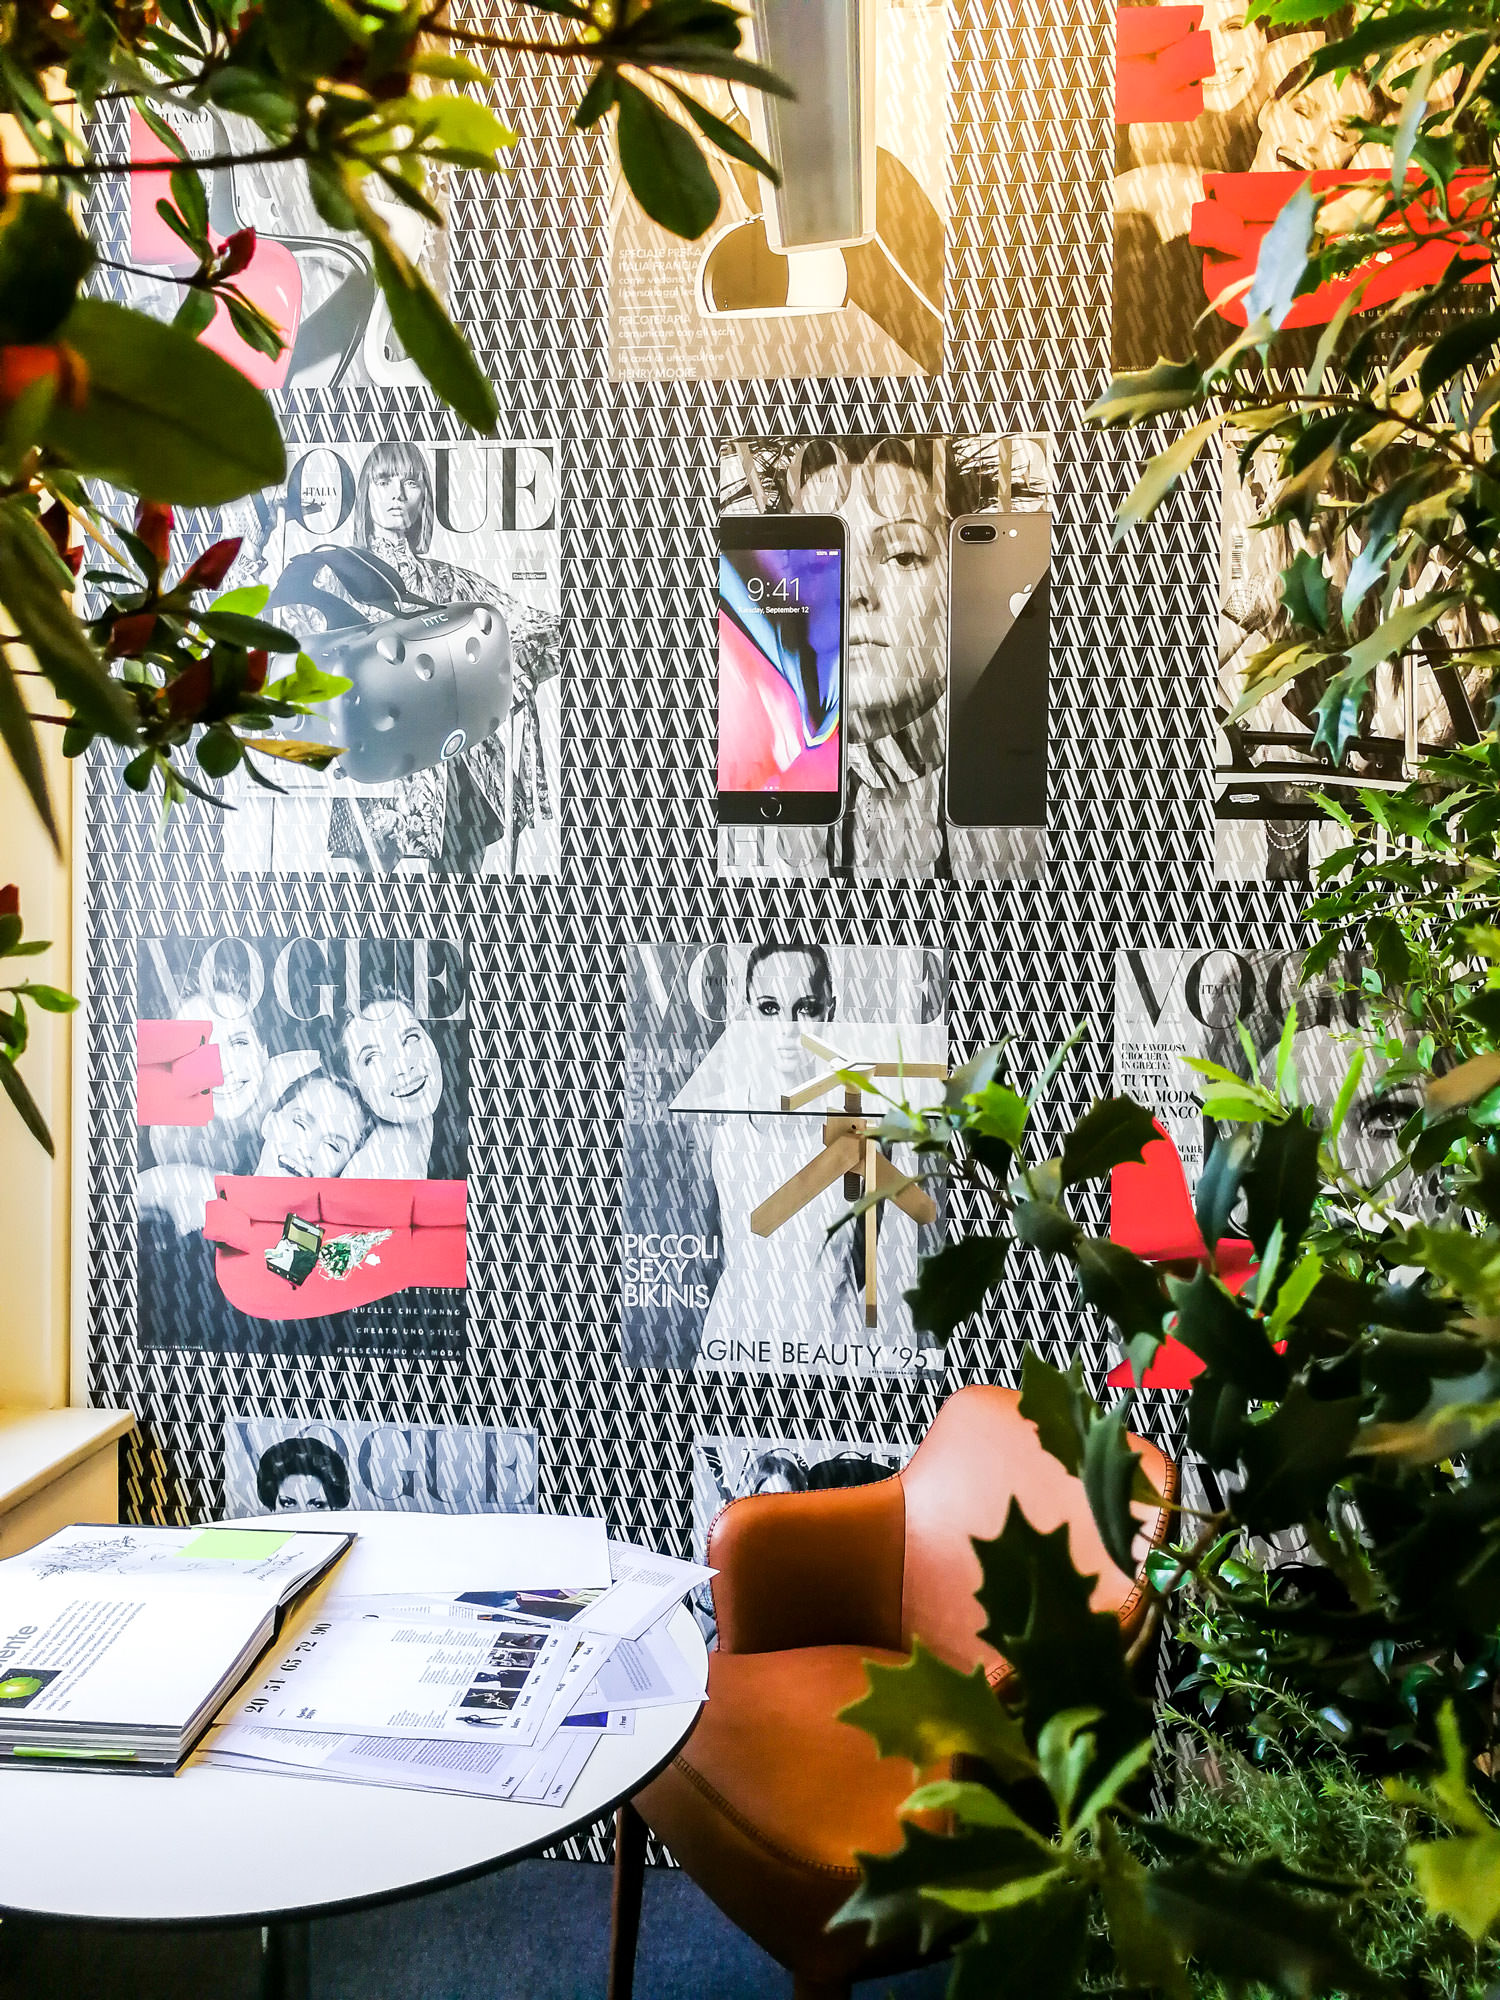 Revisited Vogue Milan Office Spaces You Will Absolutely Love - www.authenticinterior.com Interior design blog and inspiration